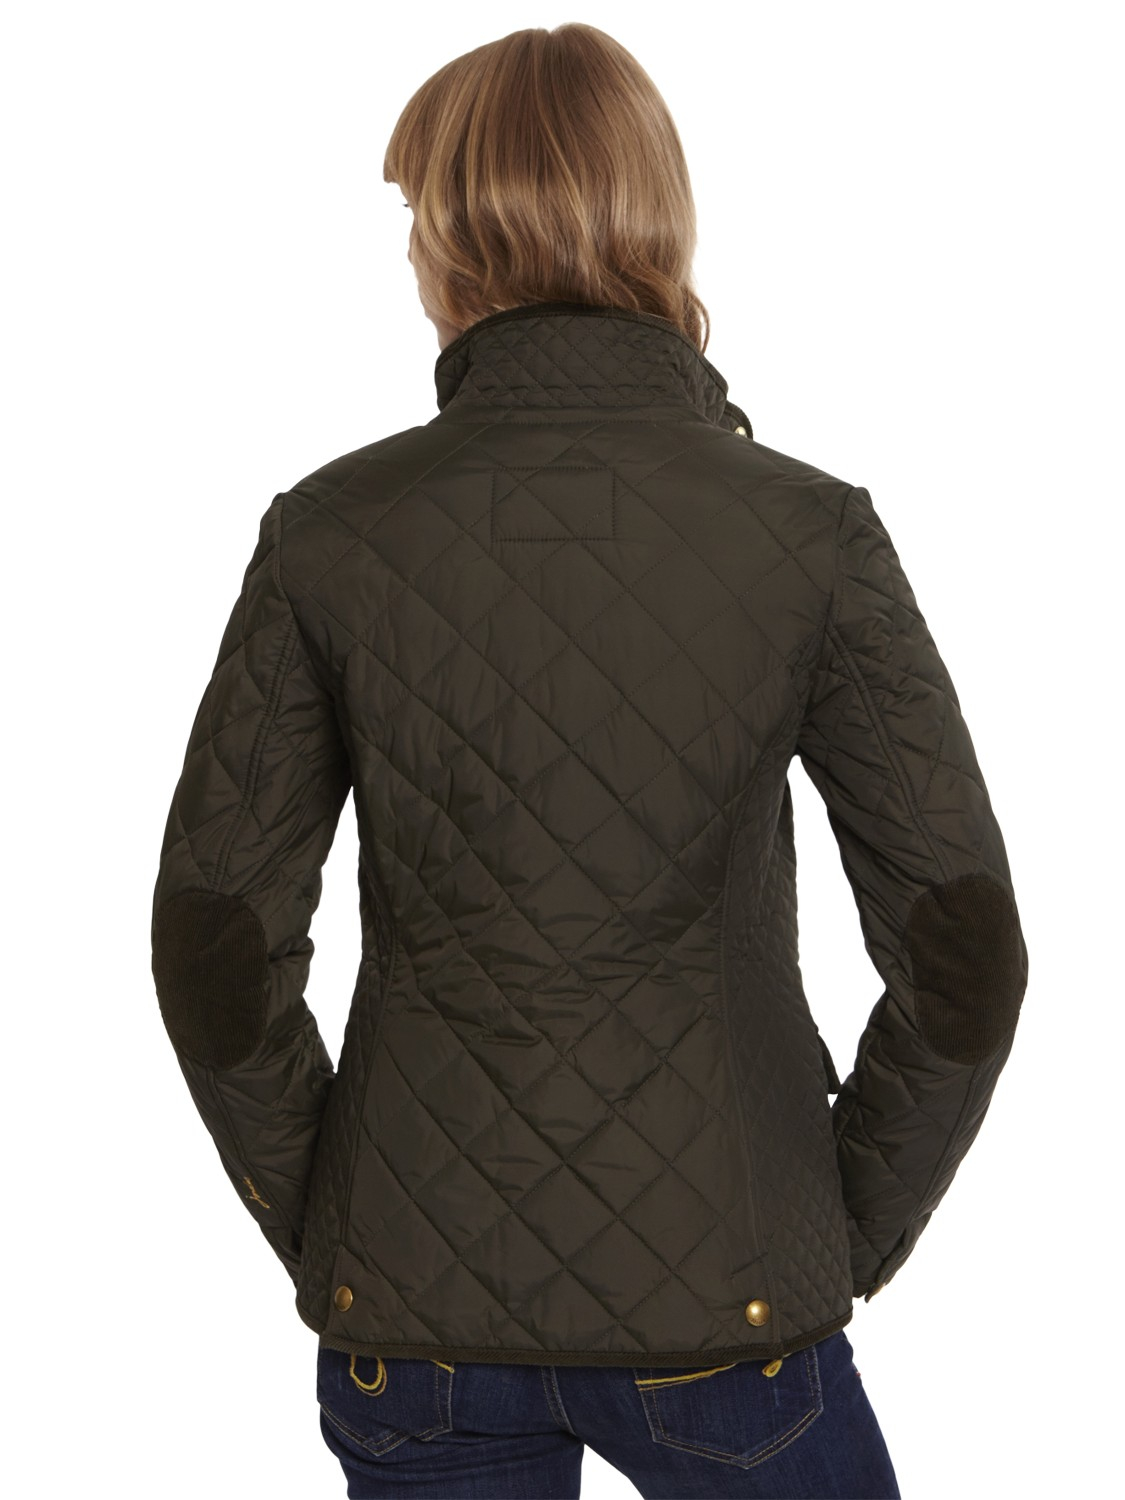 Lyst - Joules Moredale Quilted Jacket in Green : joules green quilted jacket - Adamdwight.com